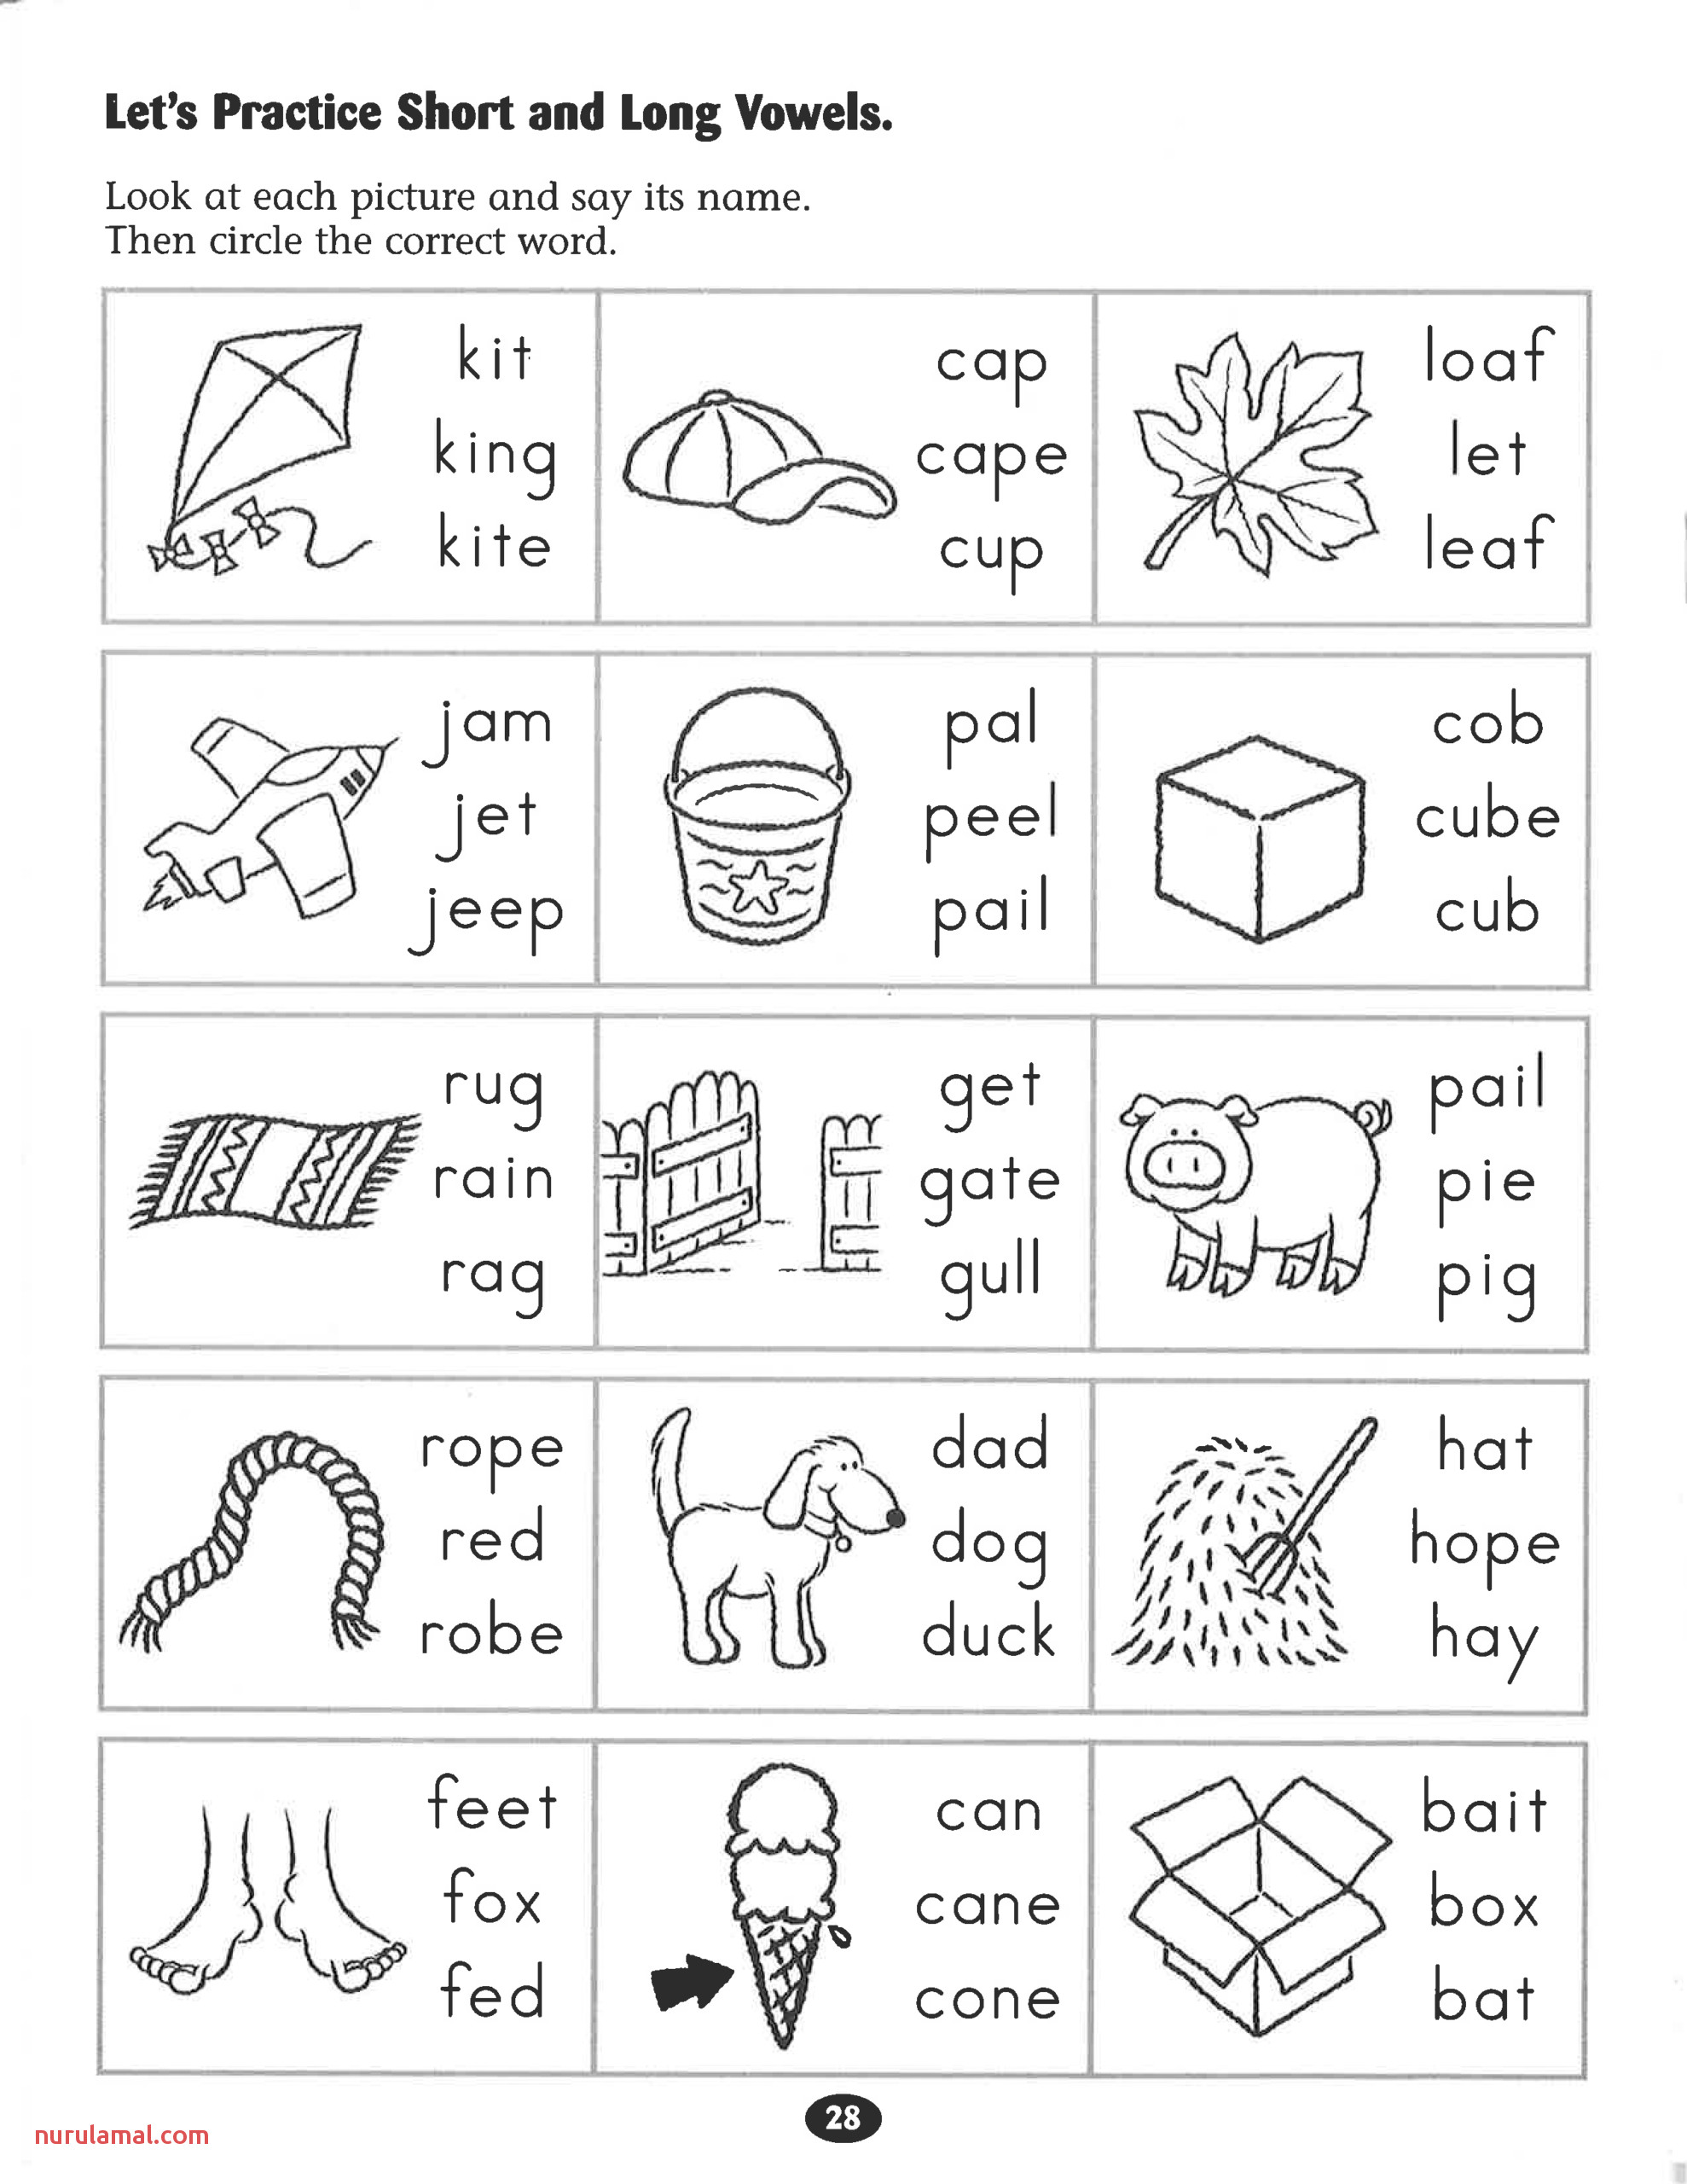 Lets Practice Short and Long Vowels Worksheet Phonics